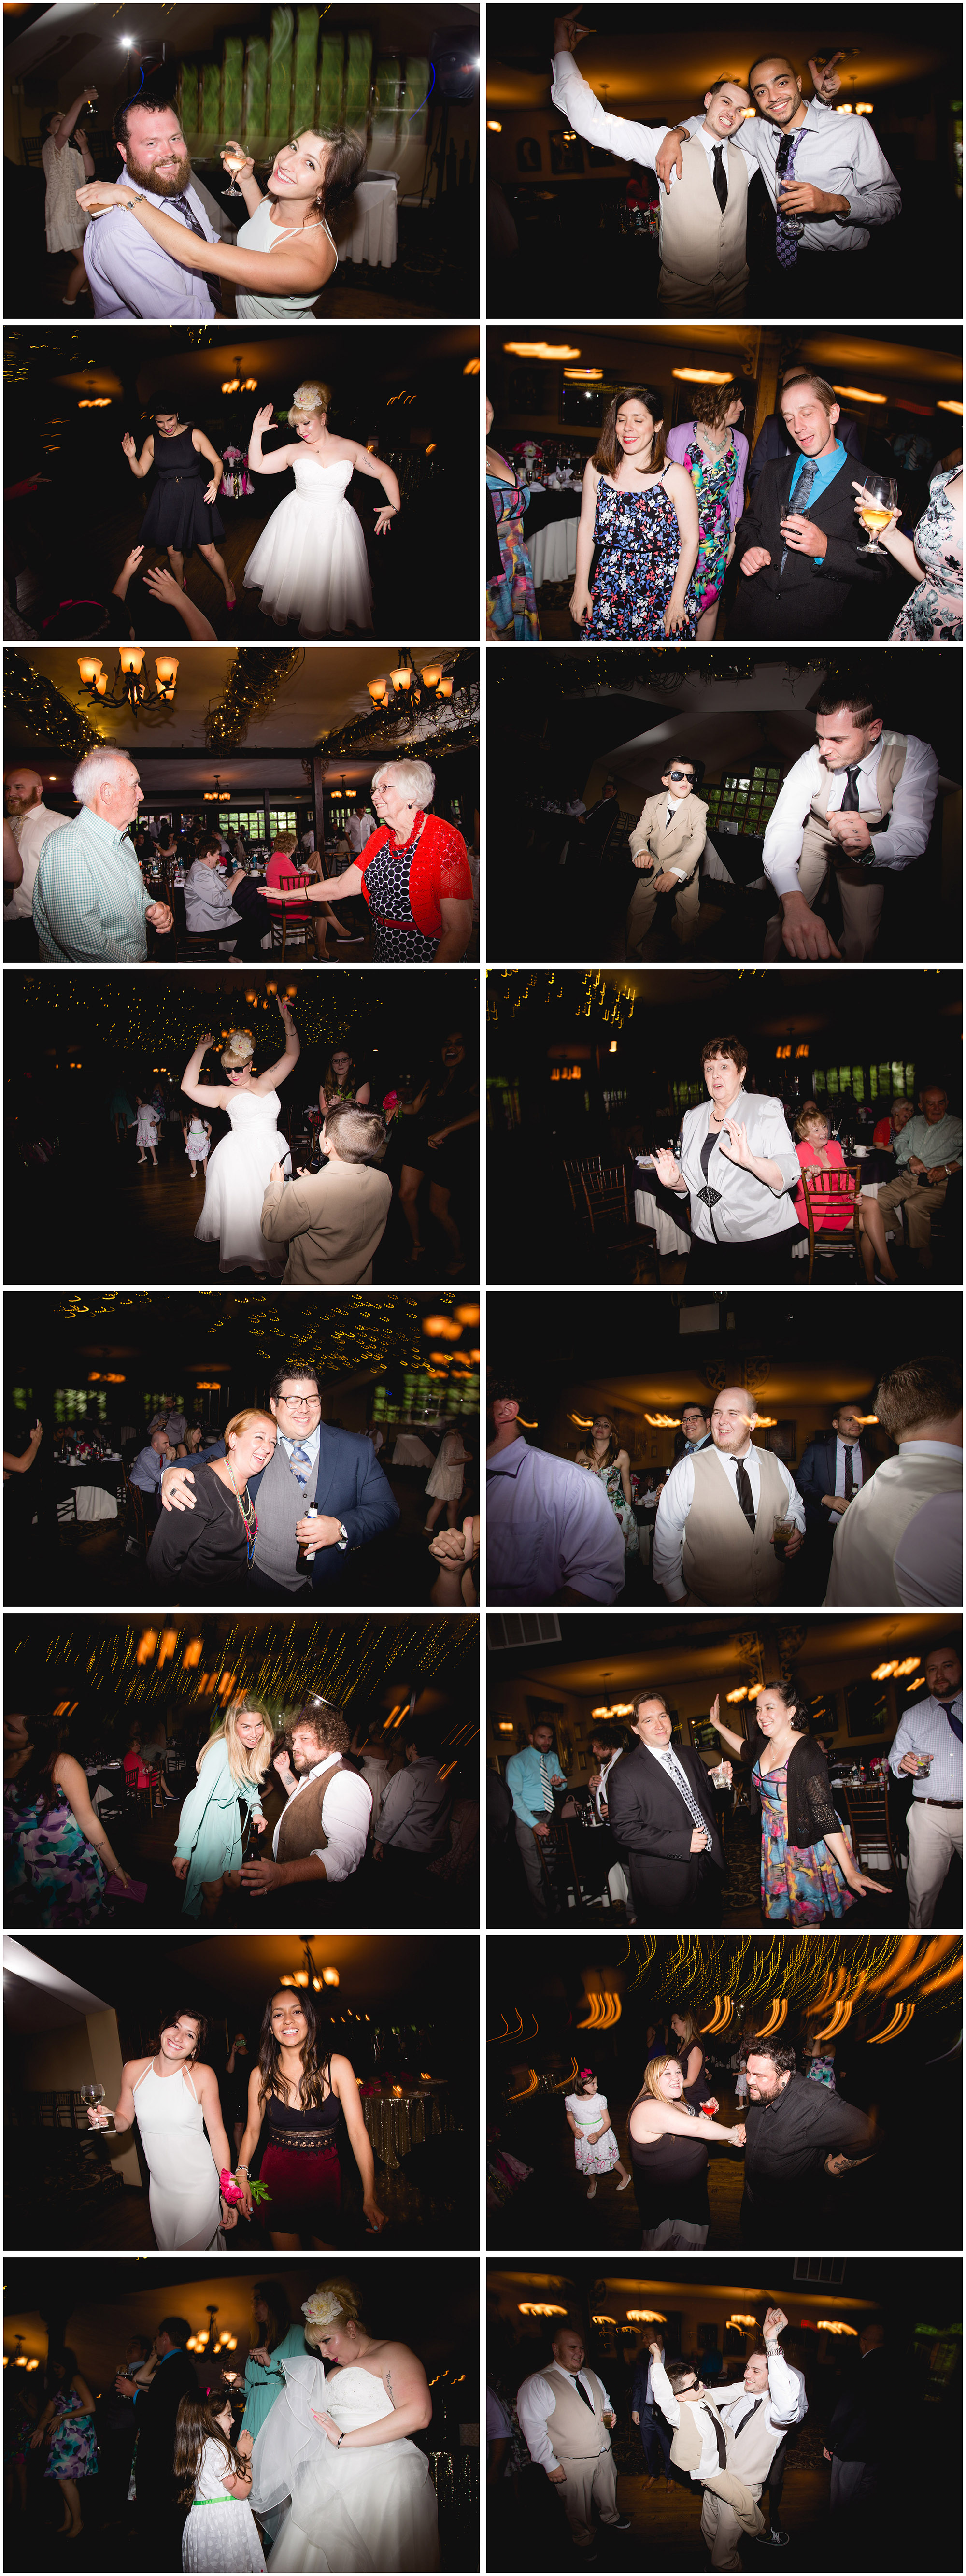 Caitlin & Joe's Stroudsmoor Woodsgate Wedding 98